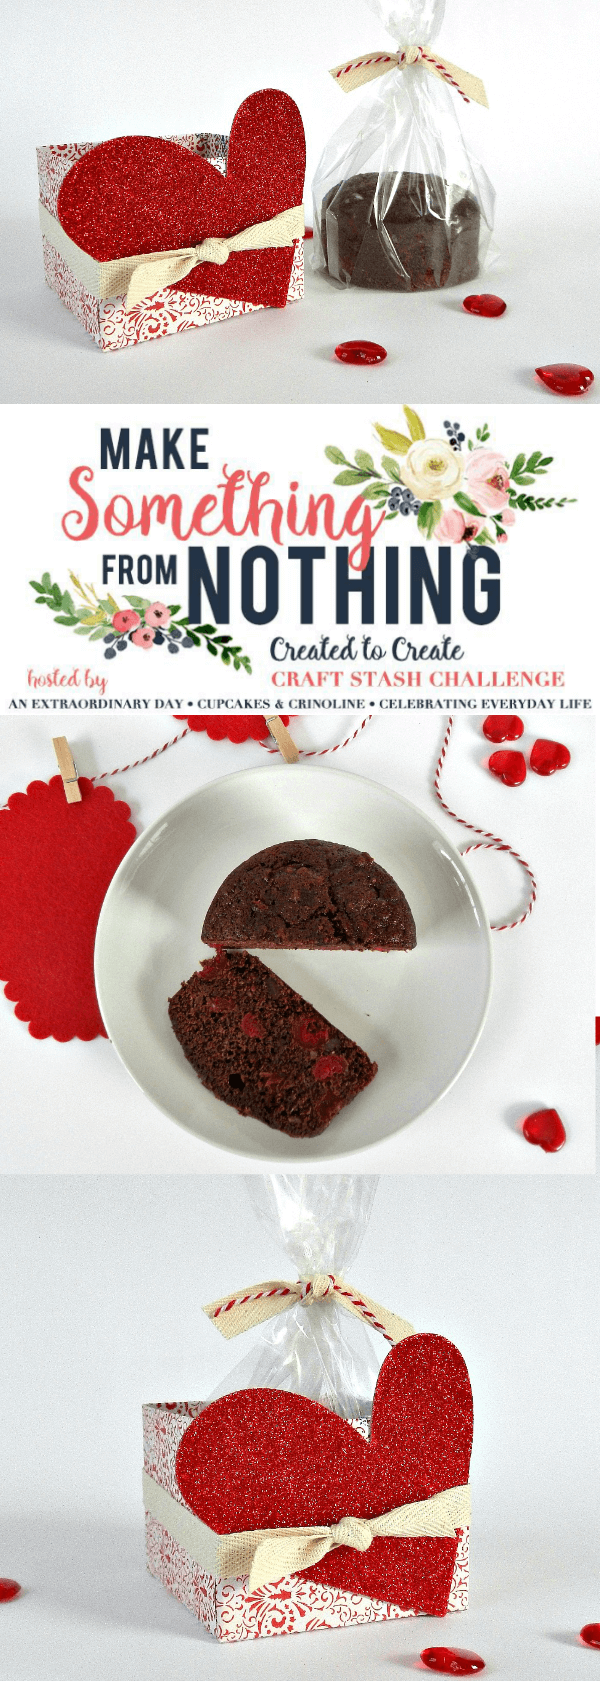 How to Bake & Package a Chocolate Valentine's Day Gift - Make Something from Nothing Valentine's Day Gift Challenge